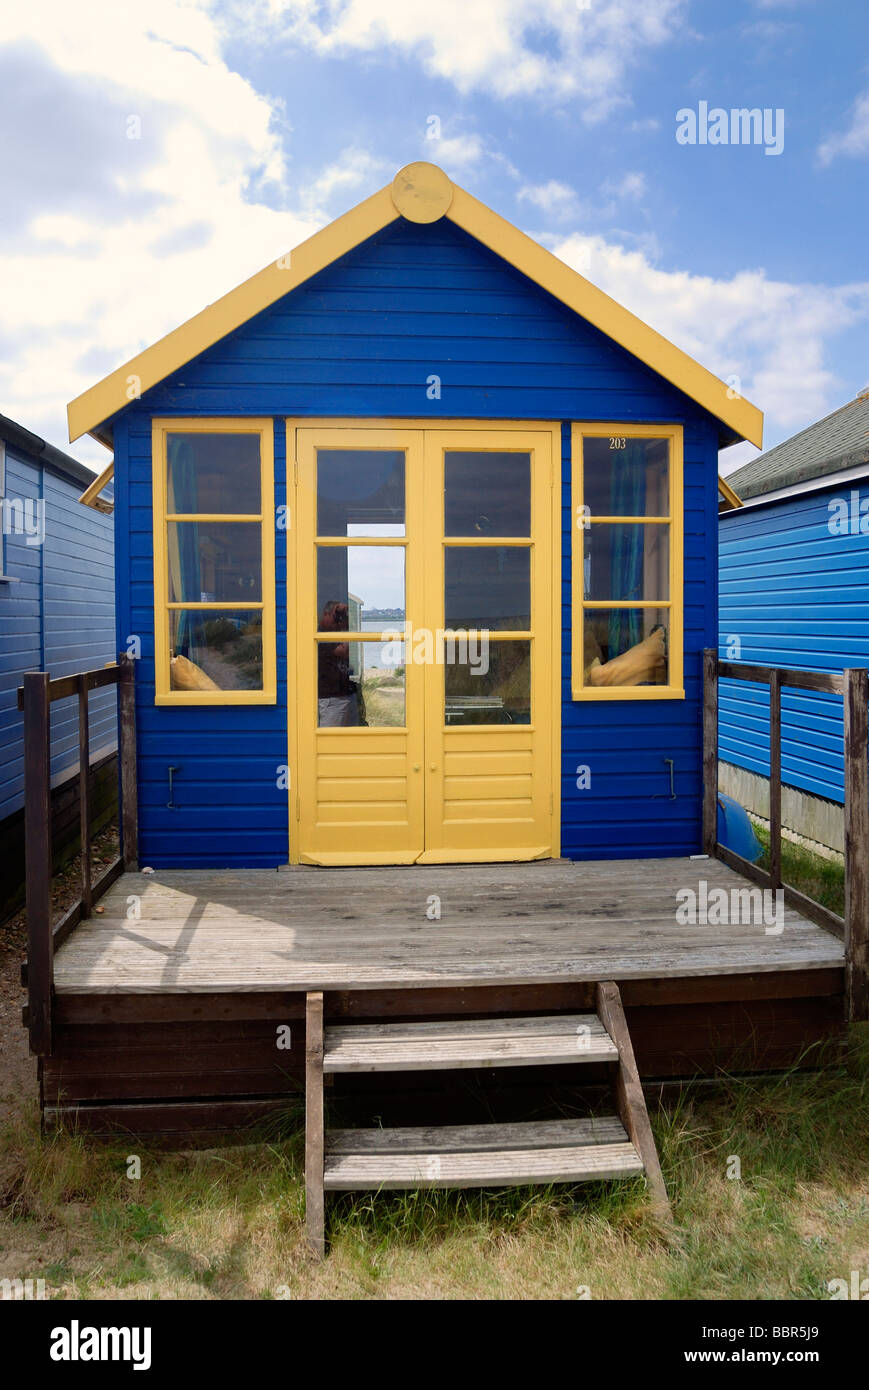 Large deluxe beach hut - Stock Image